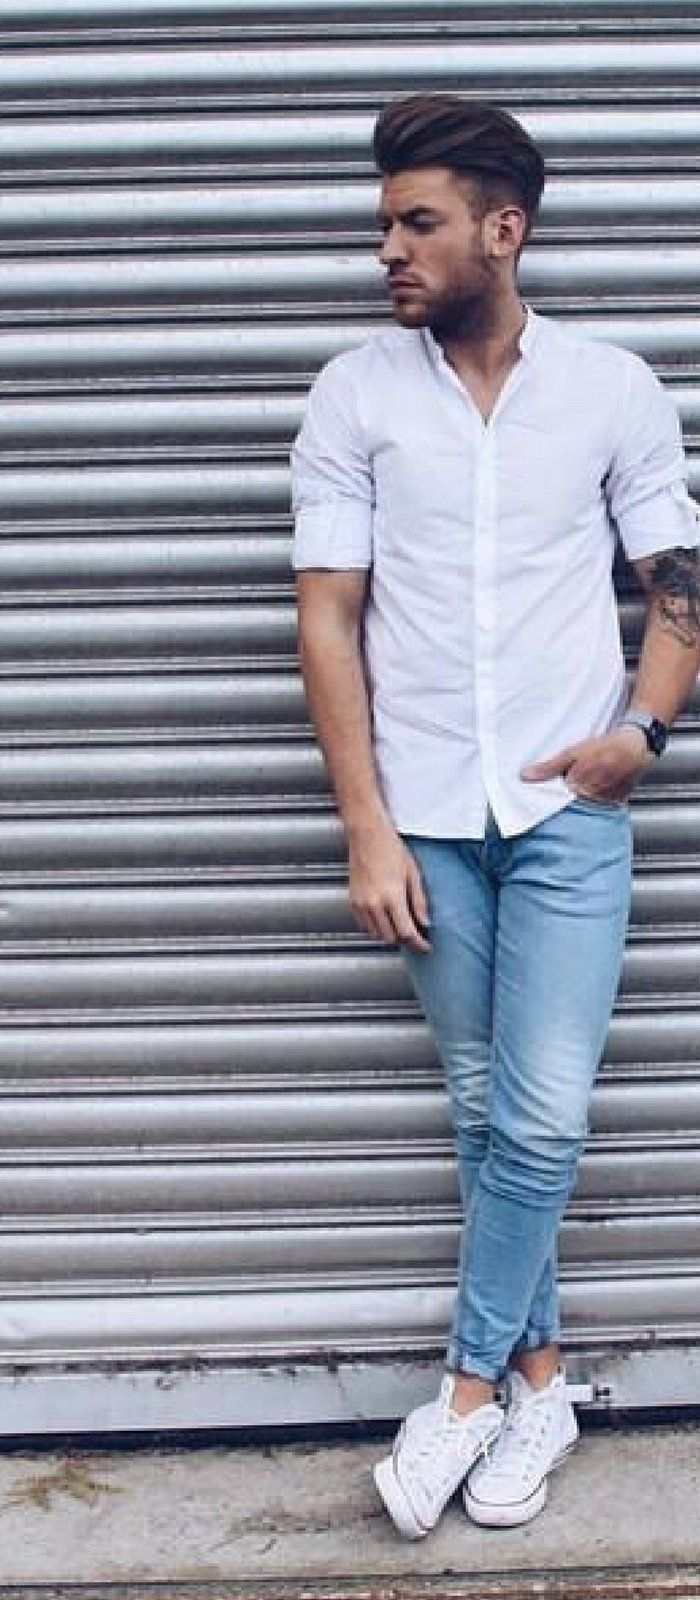 da052d8a7be0 15 Coolest Outfit Ideas For The Summers | ! Men's Fashion, Street ...